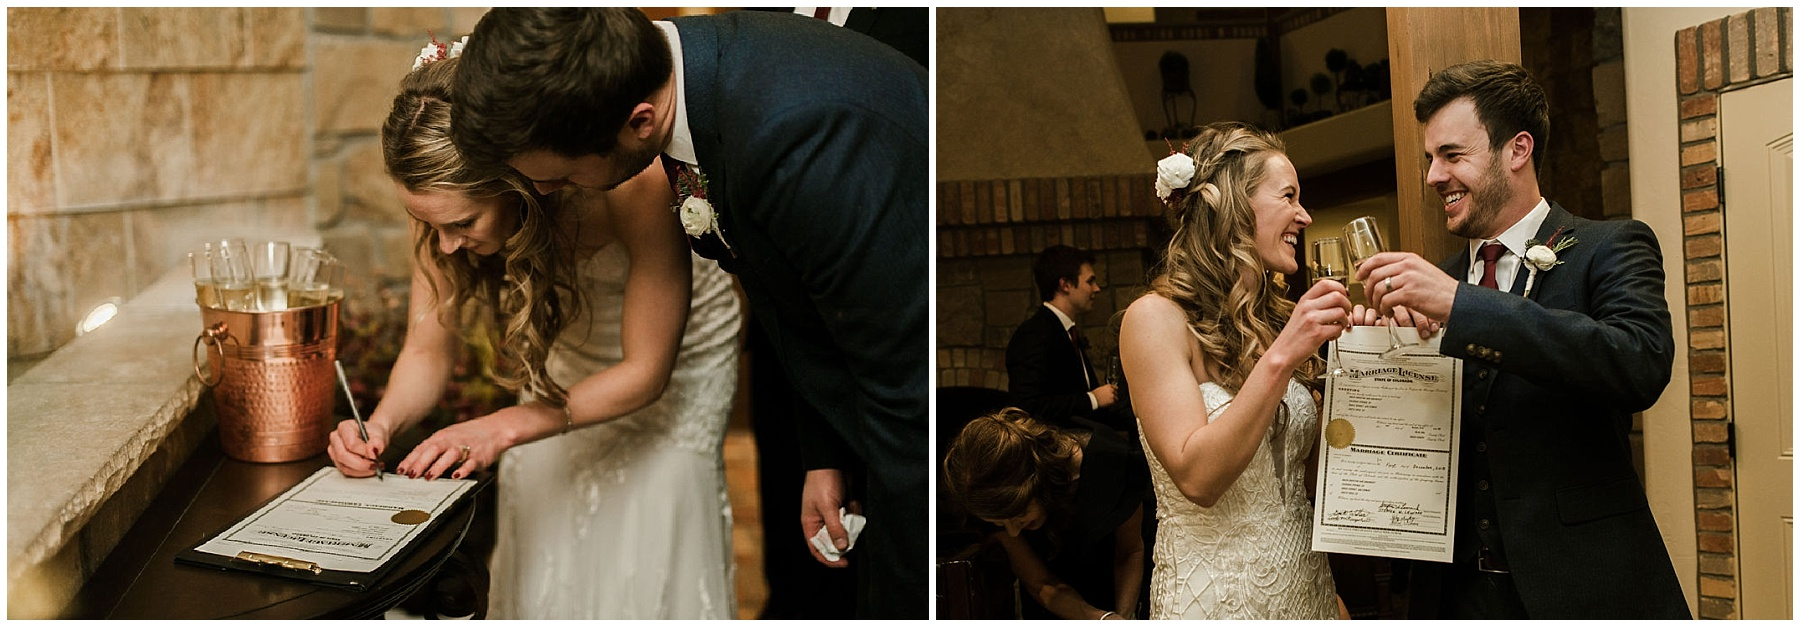 Katesalleyphotography-534_Haley and Dan get married in Estes Park.jpg